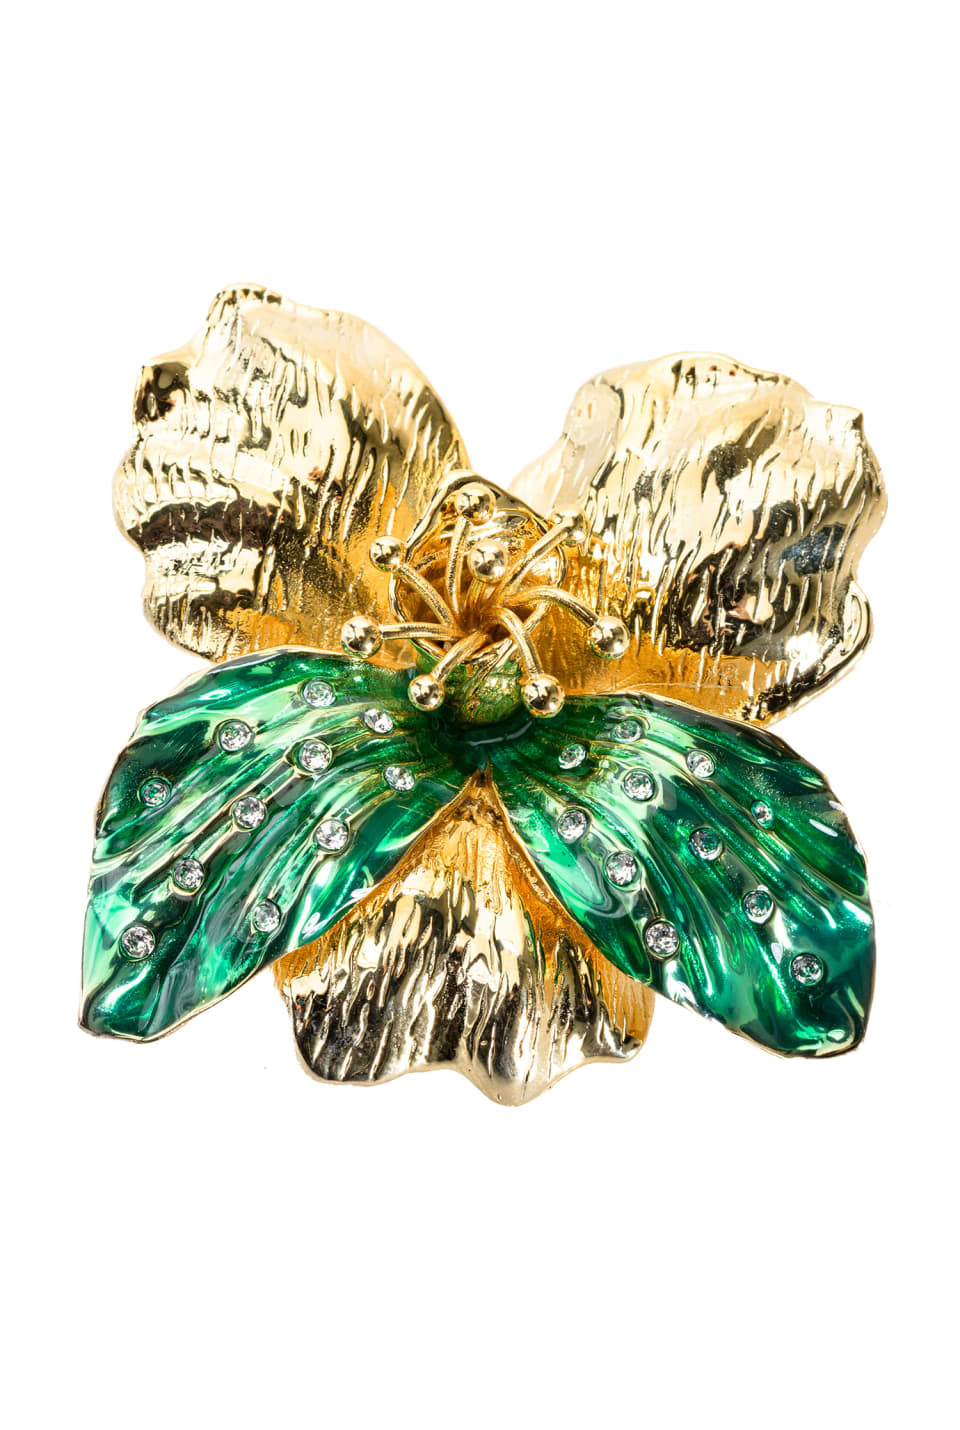 Enamelled orchid brooch with crystals